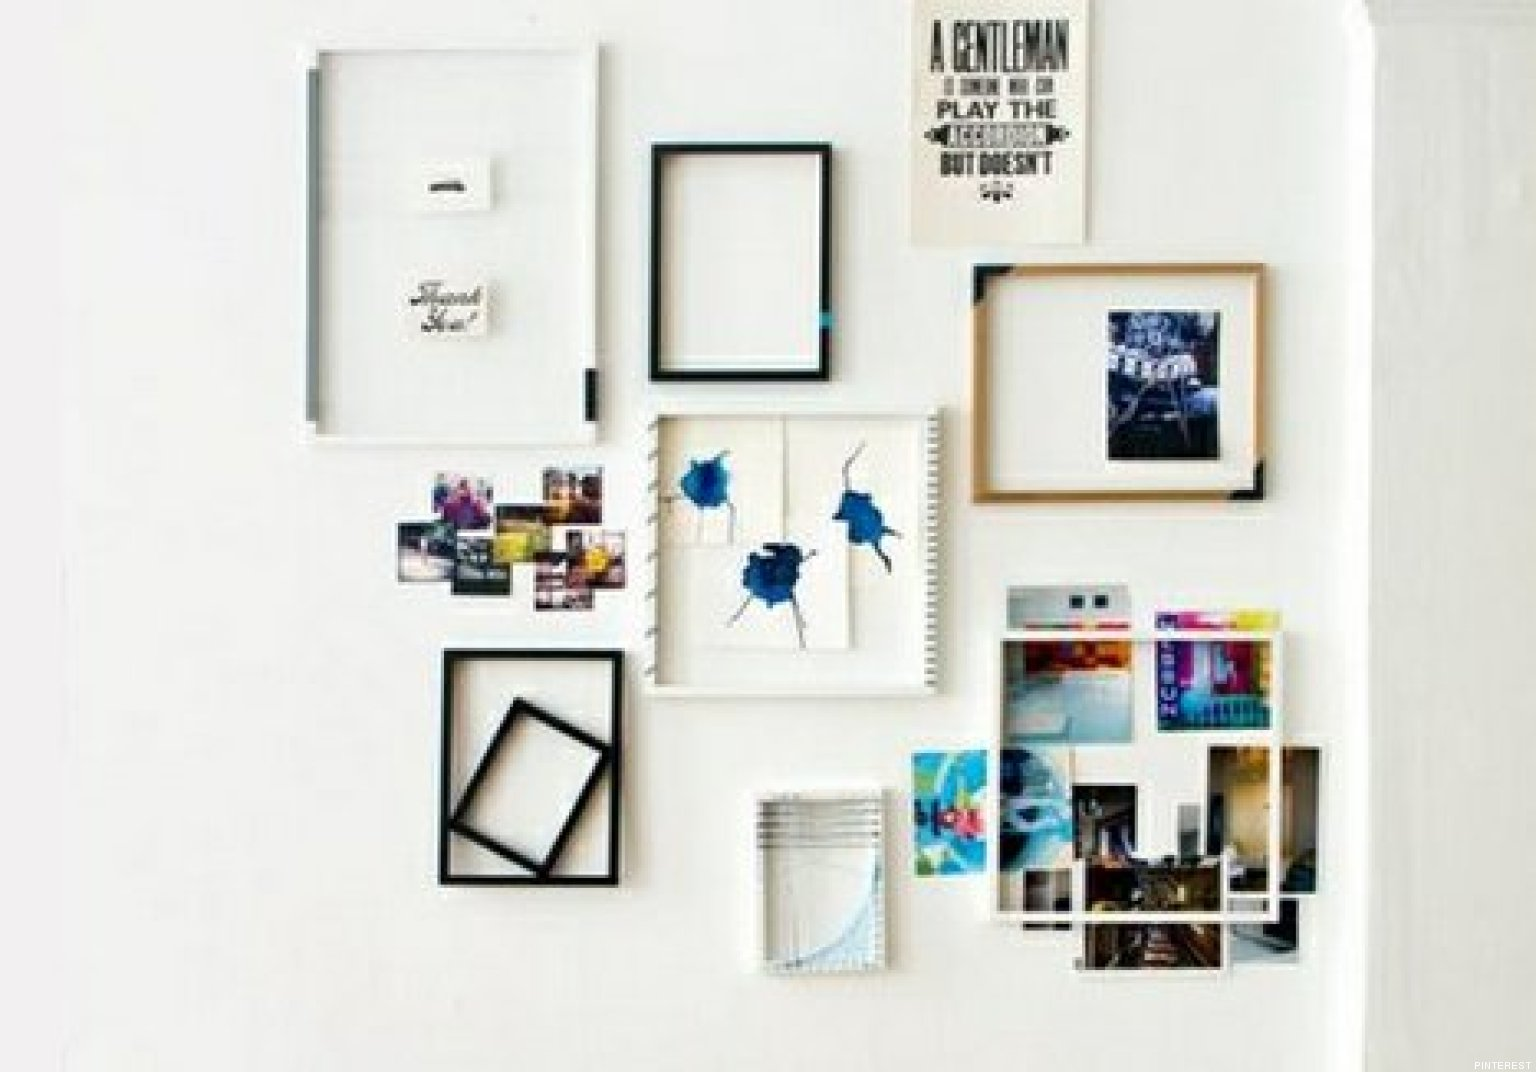 Decorar con cuadros 33 ideas para enmarcar fotos - Como poner fotos en la pared ...